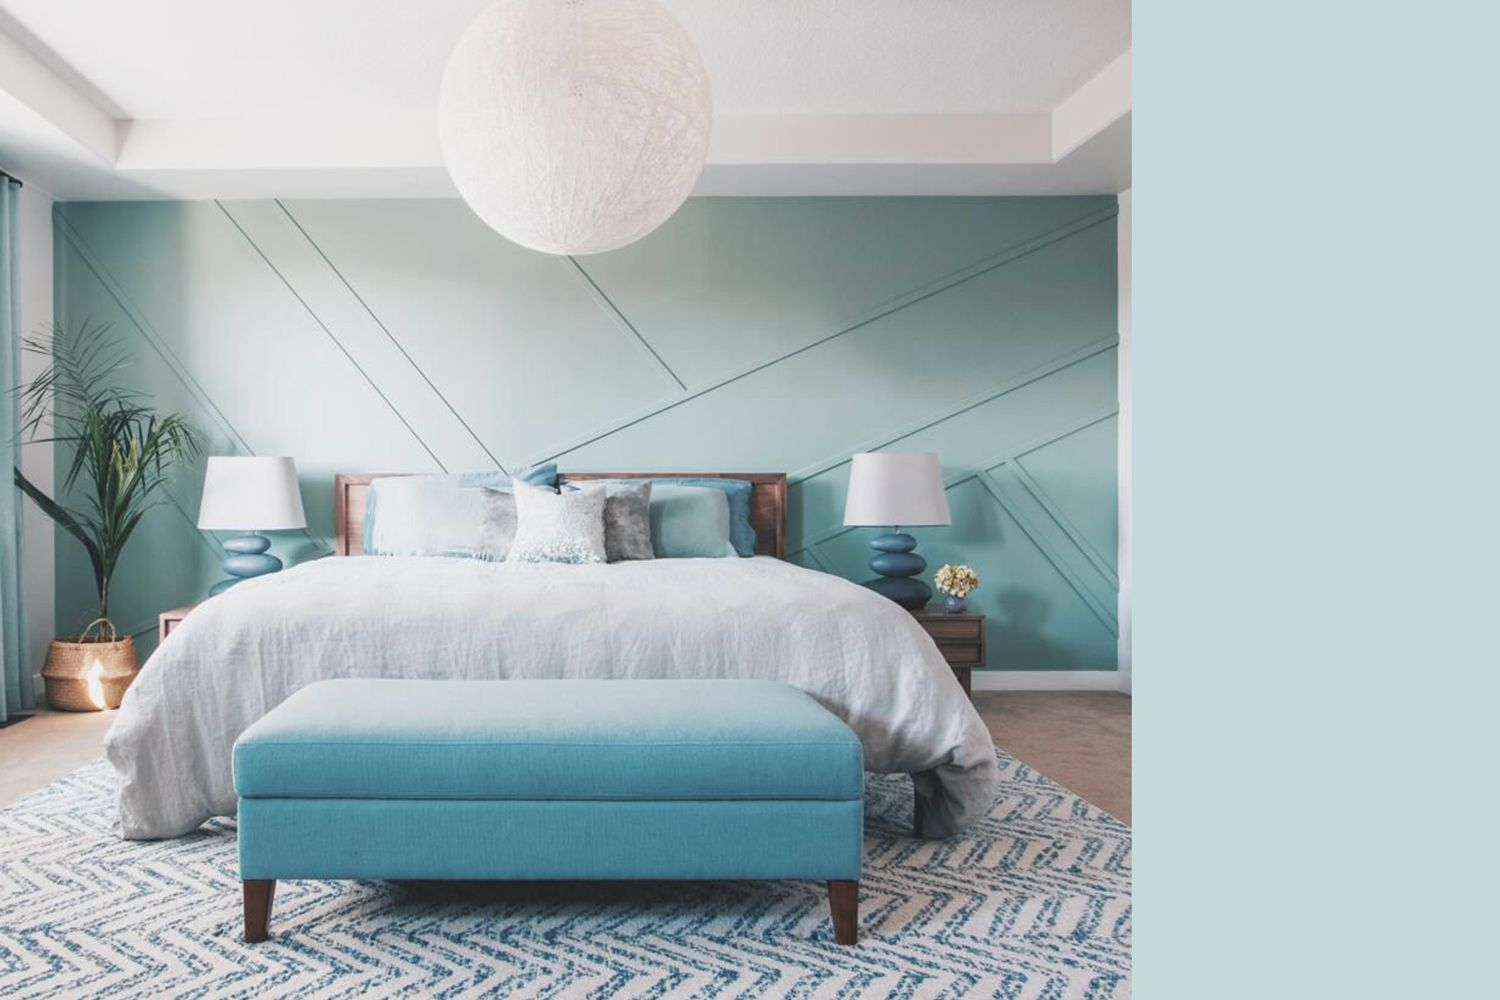 Interior painted a similar color to Misty Aqua by PPG